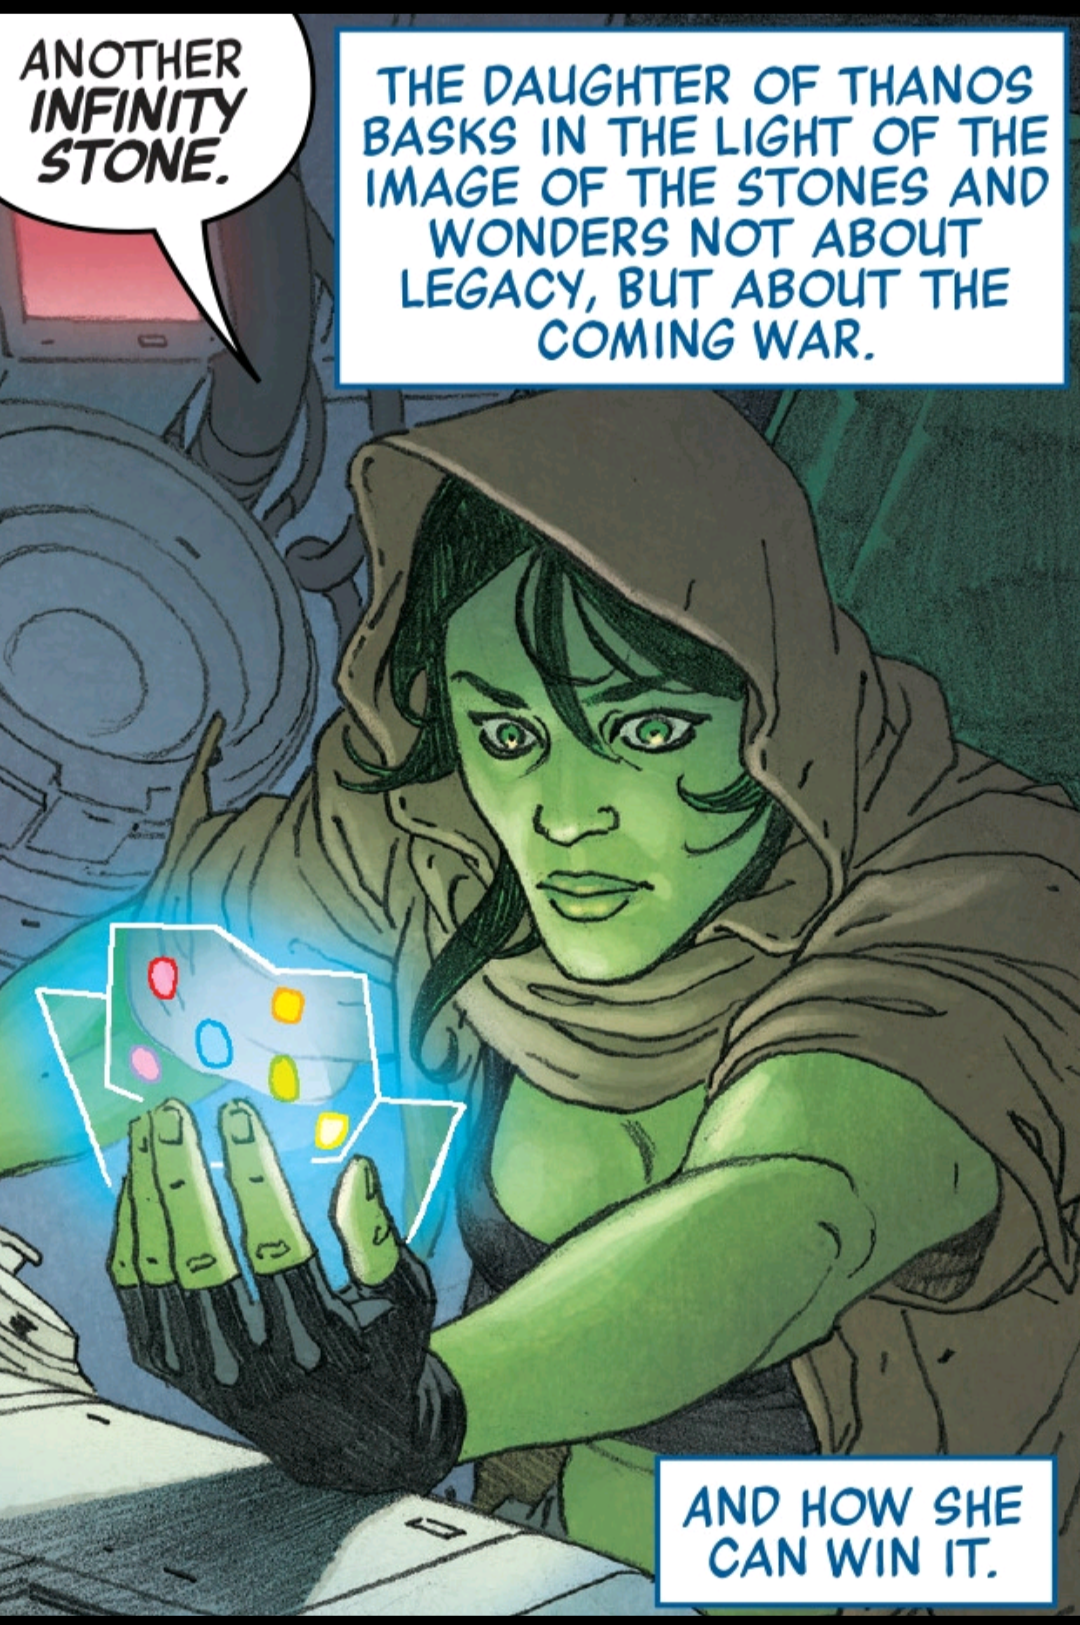 Gamora on the hunt for infinity stones